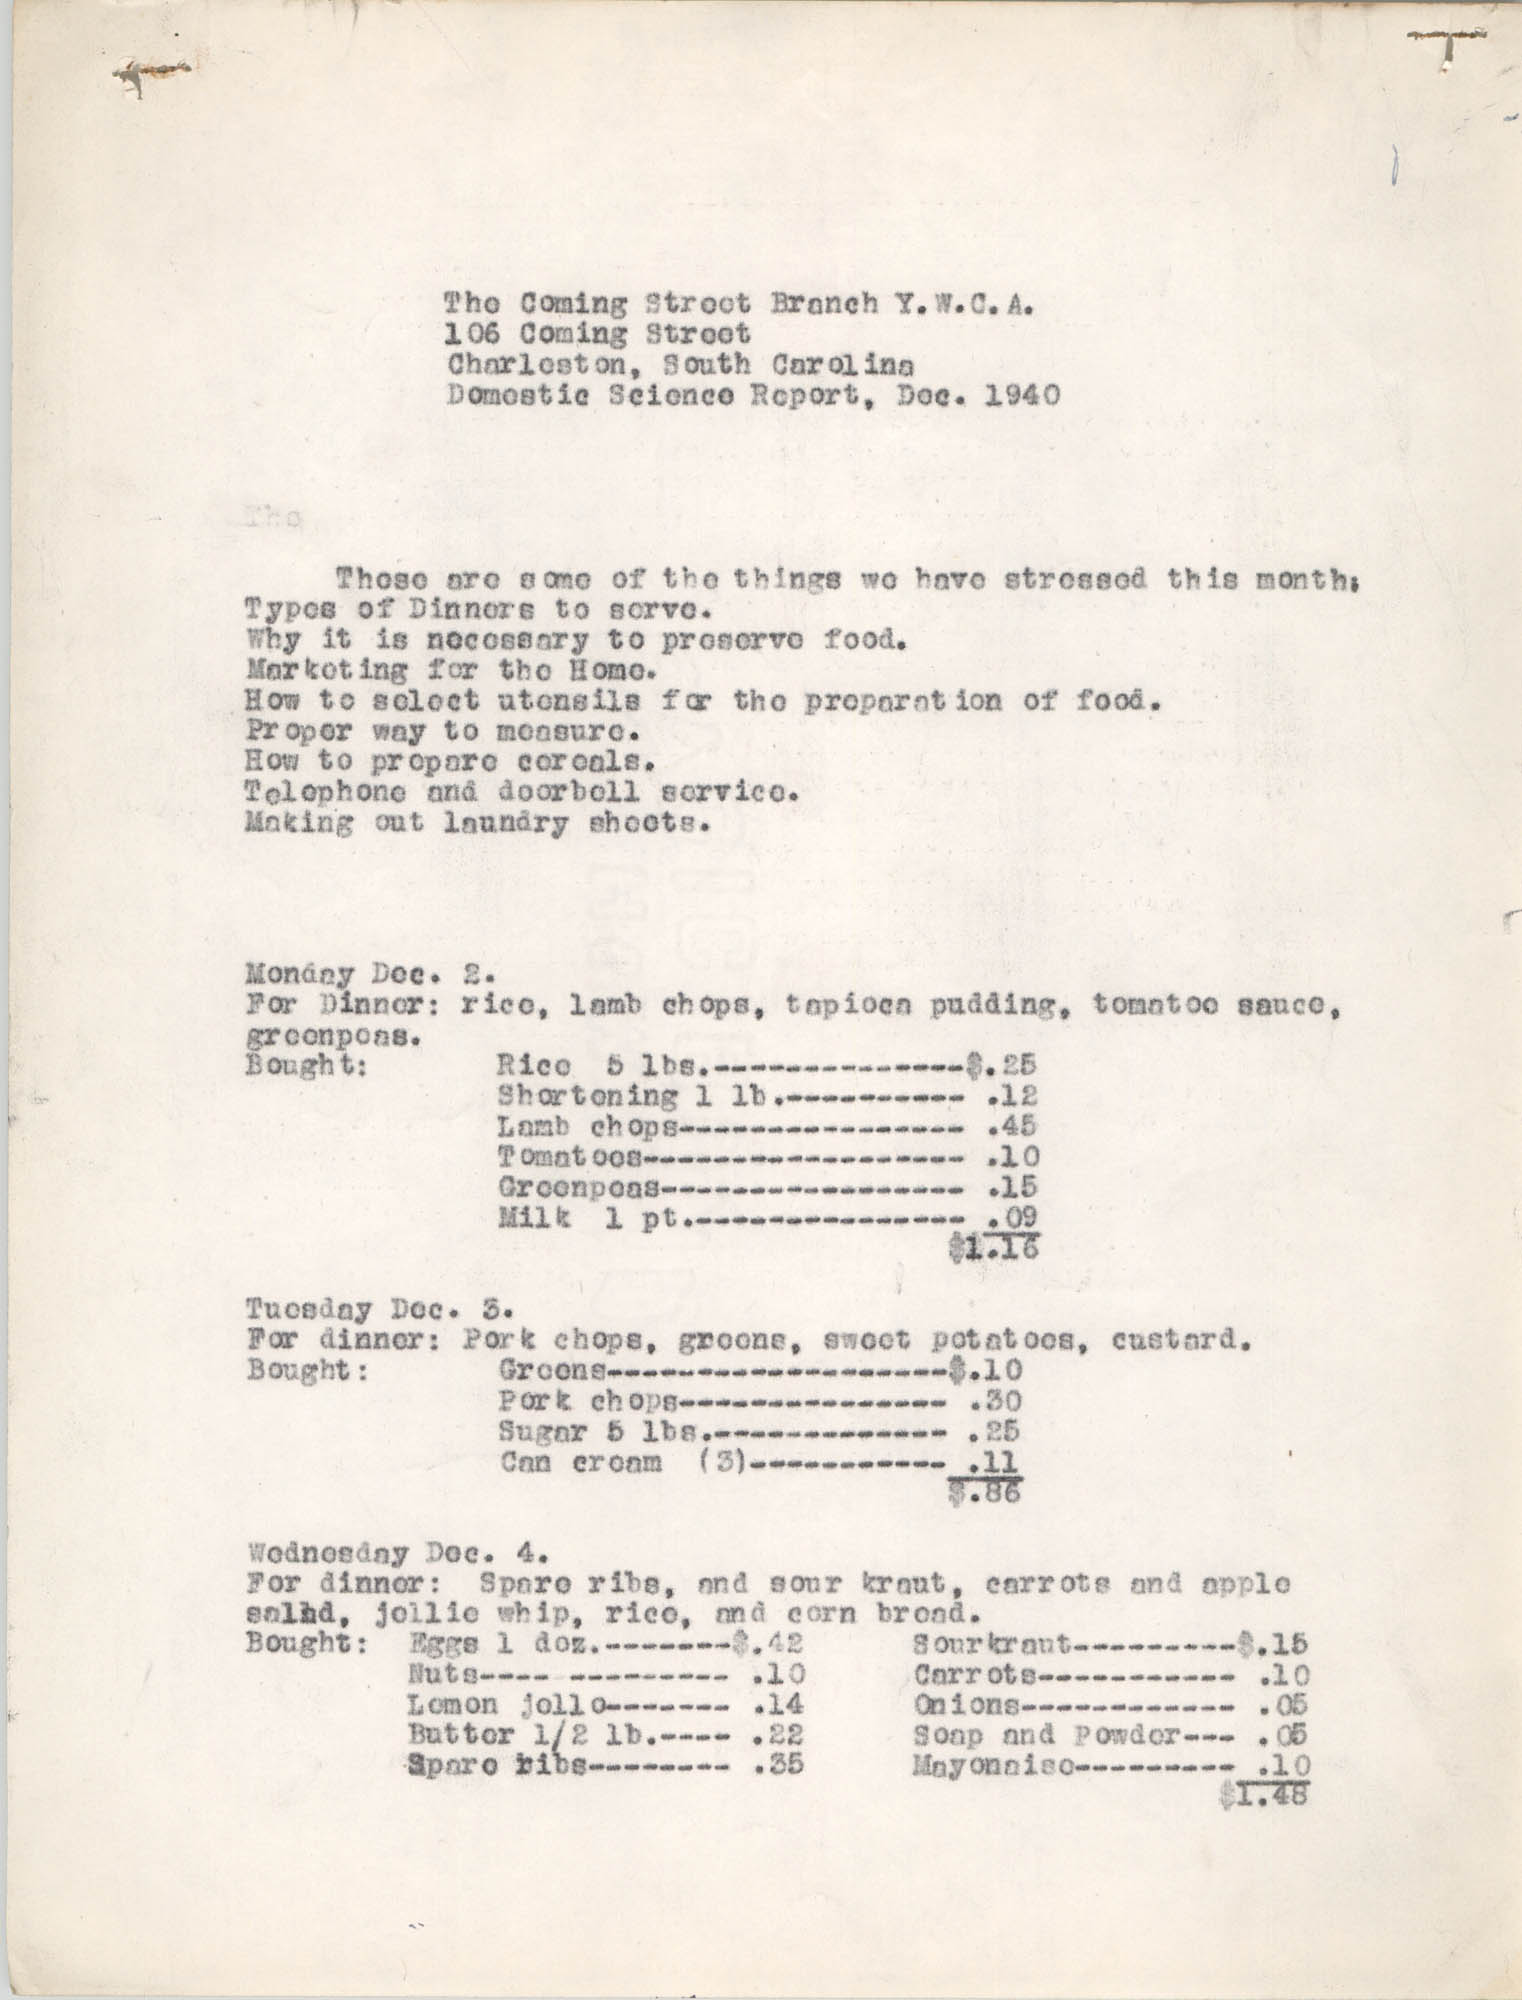 Monthly Report for the Coming Street Y.W.C.A., Domestic Science School, September 1940, Page 1